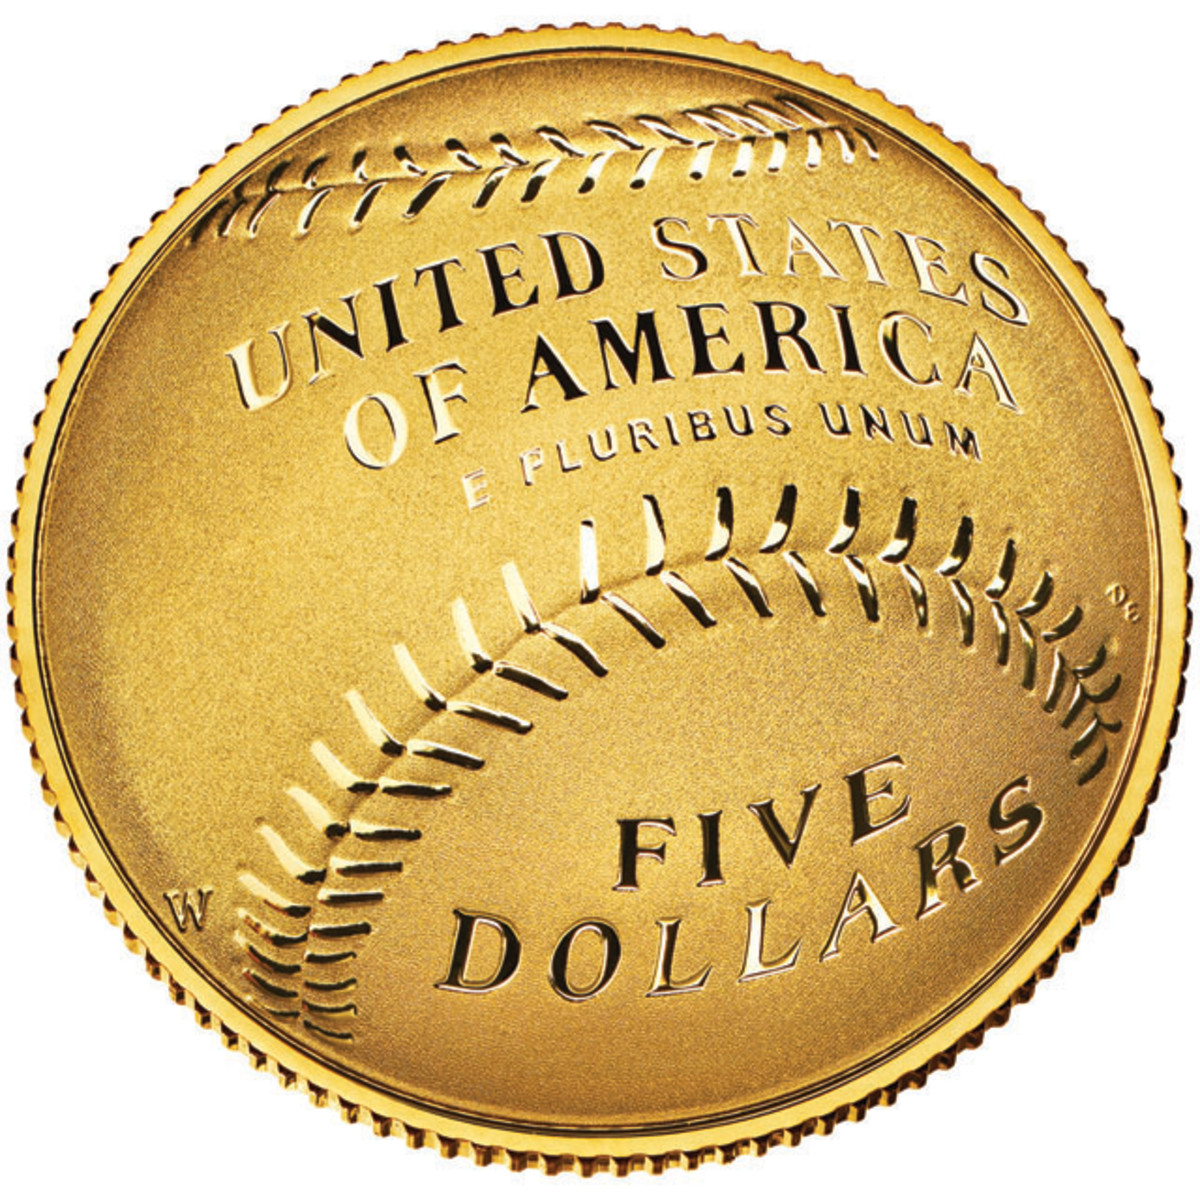 The $5 gold Baseball Hall of Fame coin sold out within a matter of hours after release